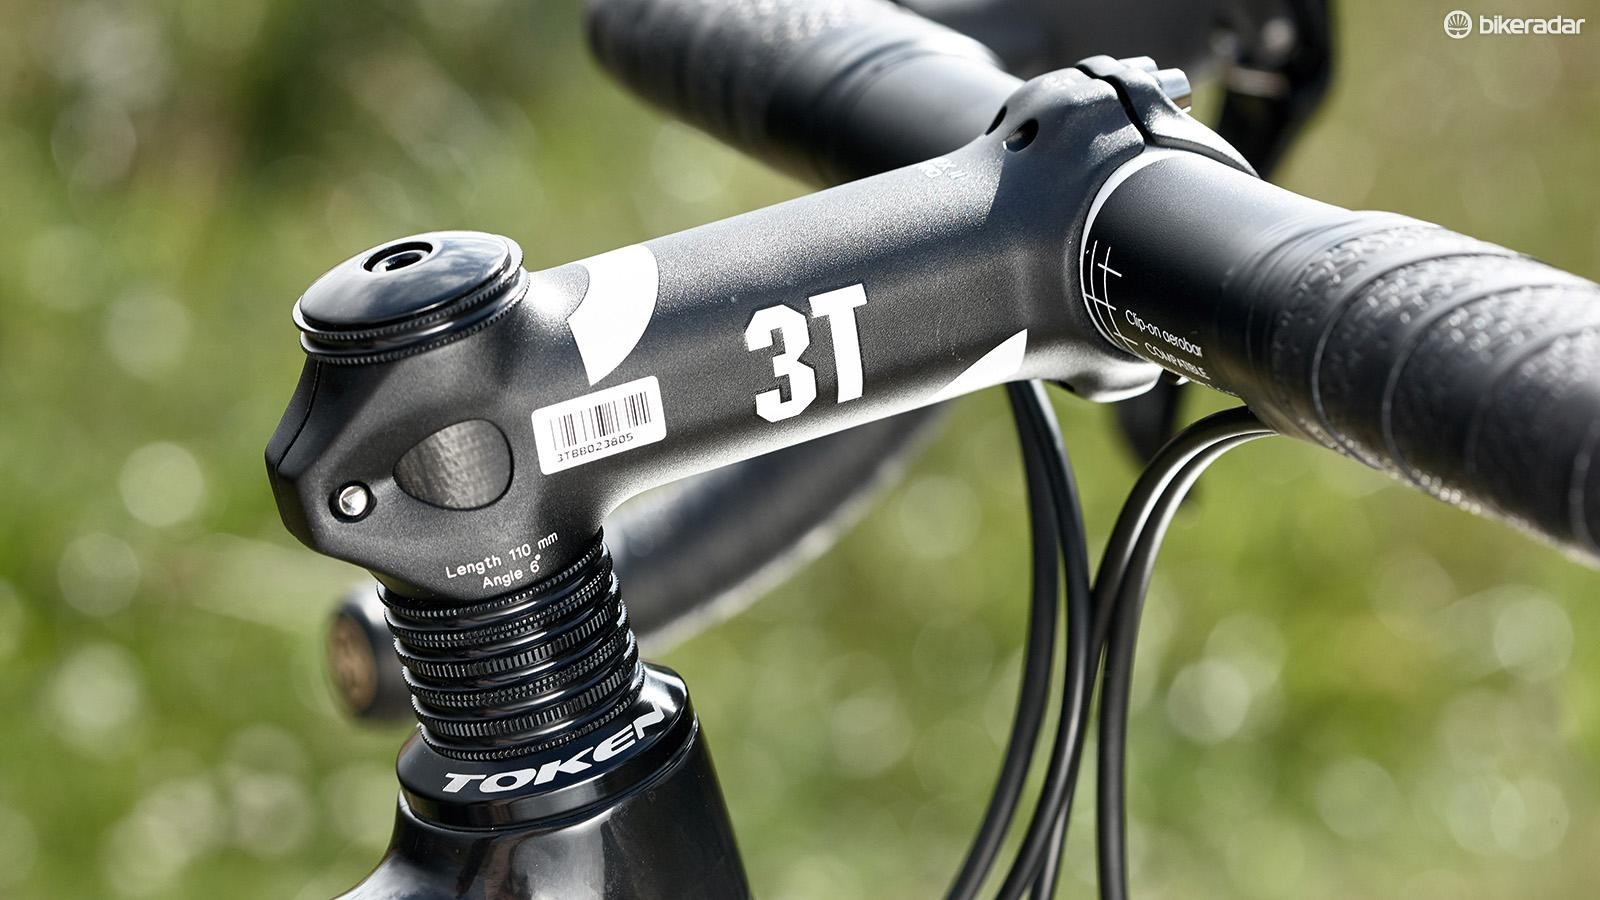 The stretched-thin bar tape wasn't as comfortable as it could be